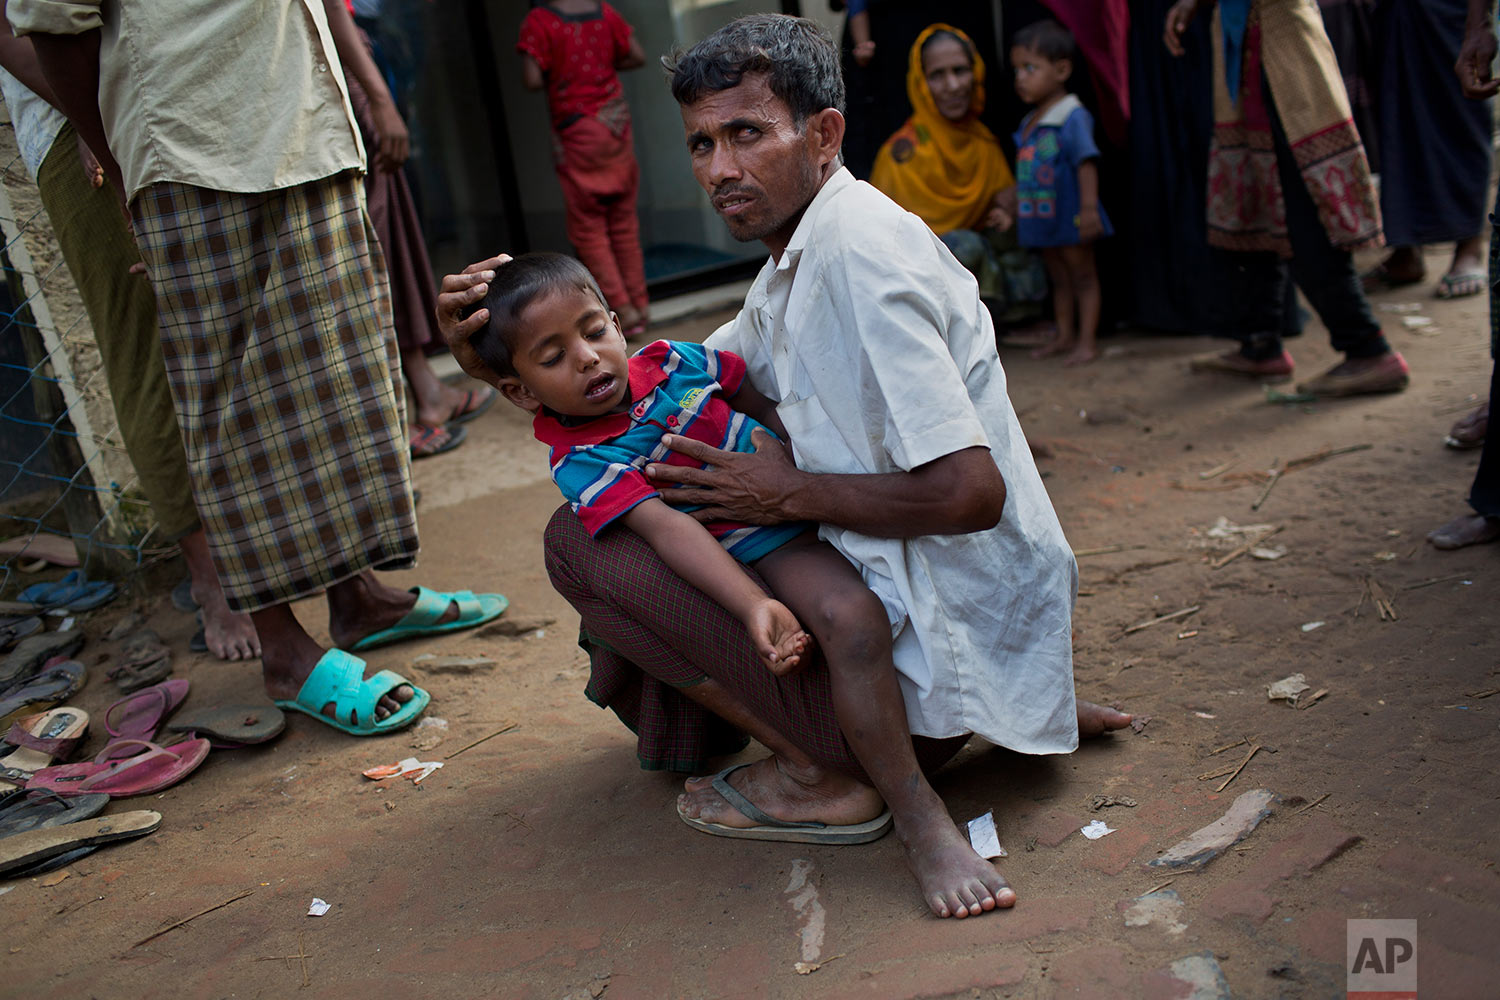 A Rohingya Muslim man holds a child with feveras they await treatment outside a clinic at Leda Refugee Camp, Bangladesh, Saturday, Sept. 9, 2017. (AP Photo/Bernat Armangue)